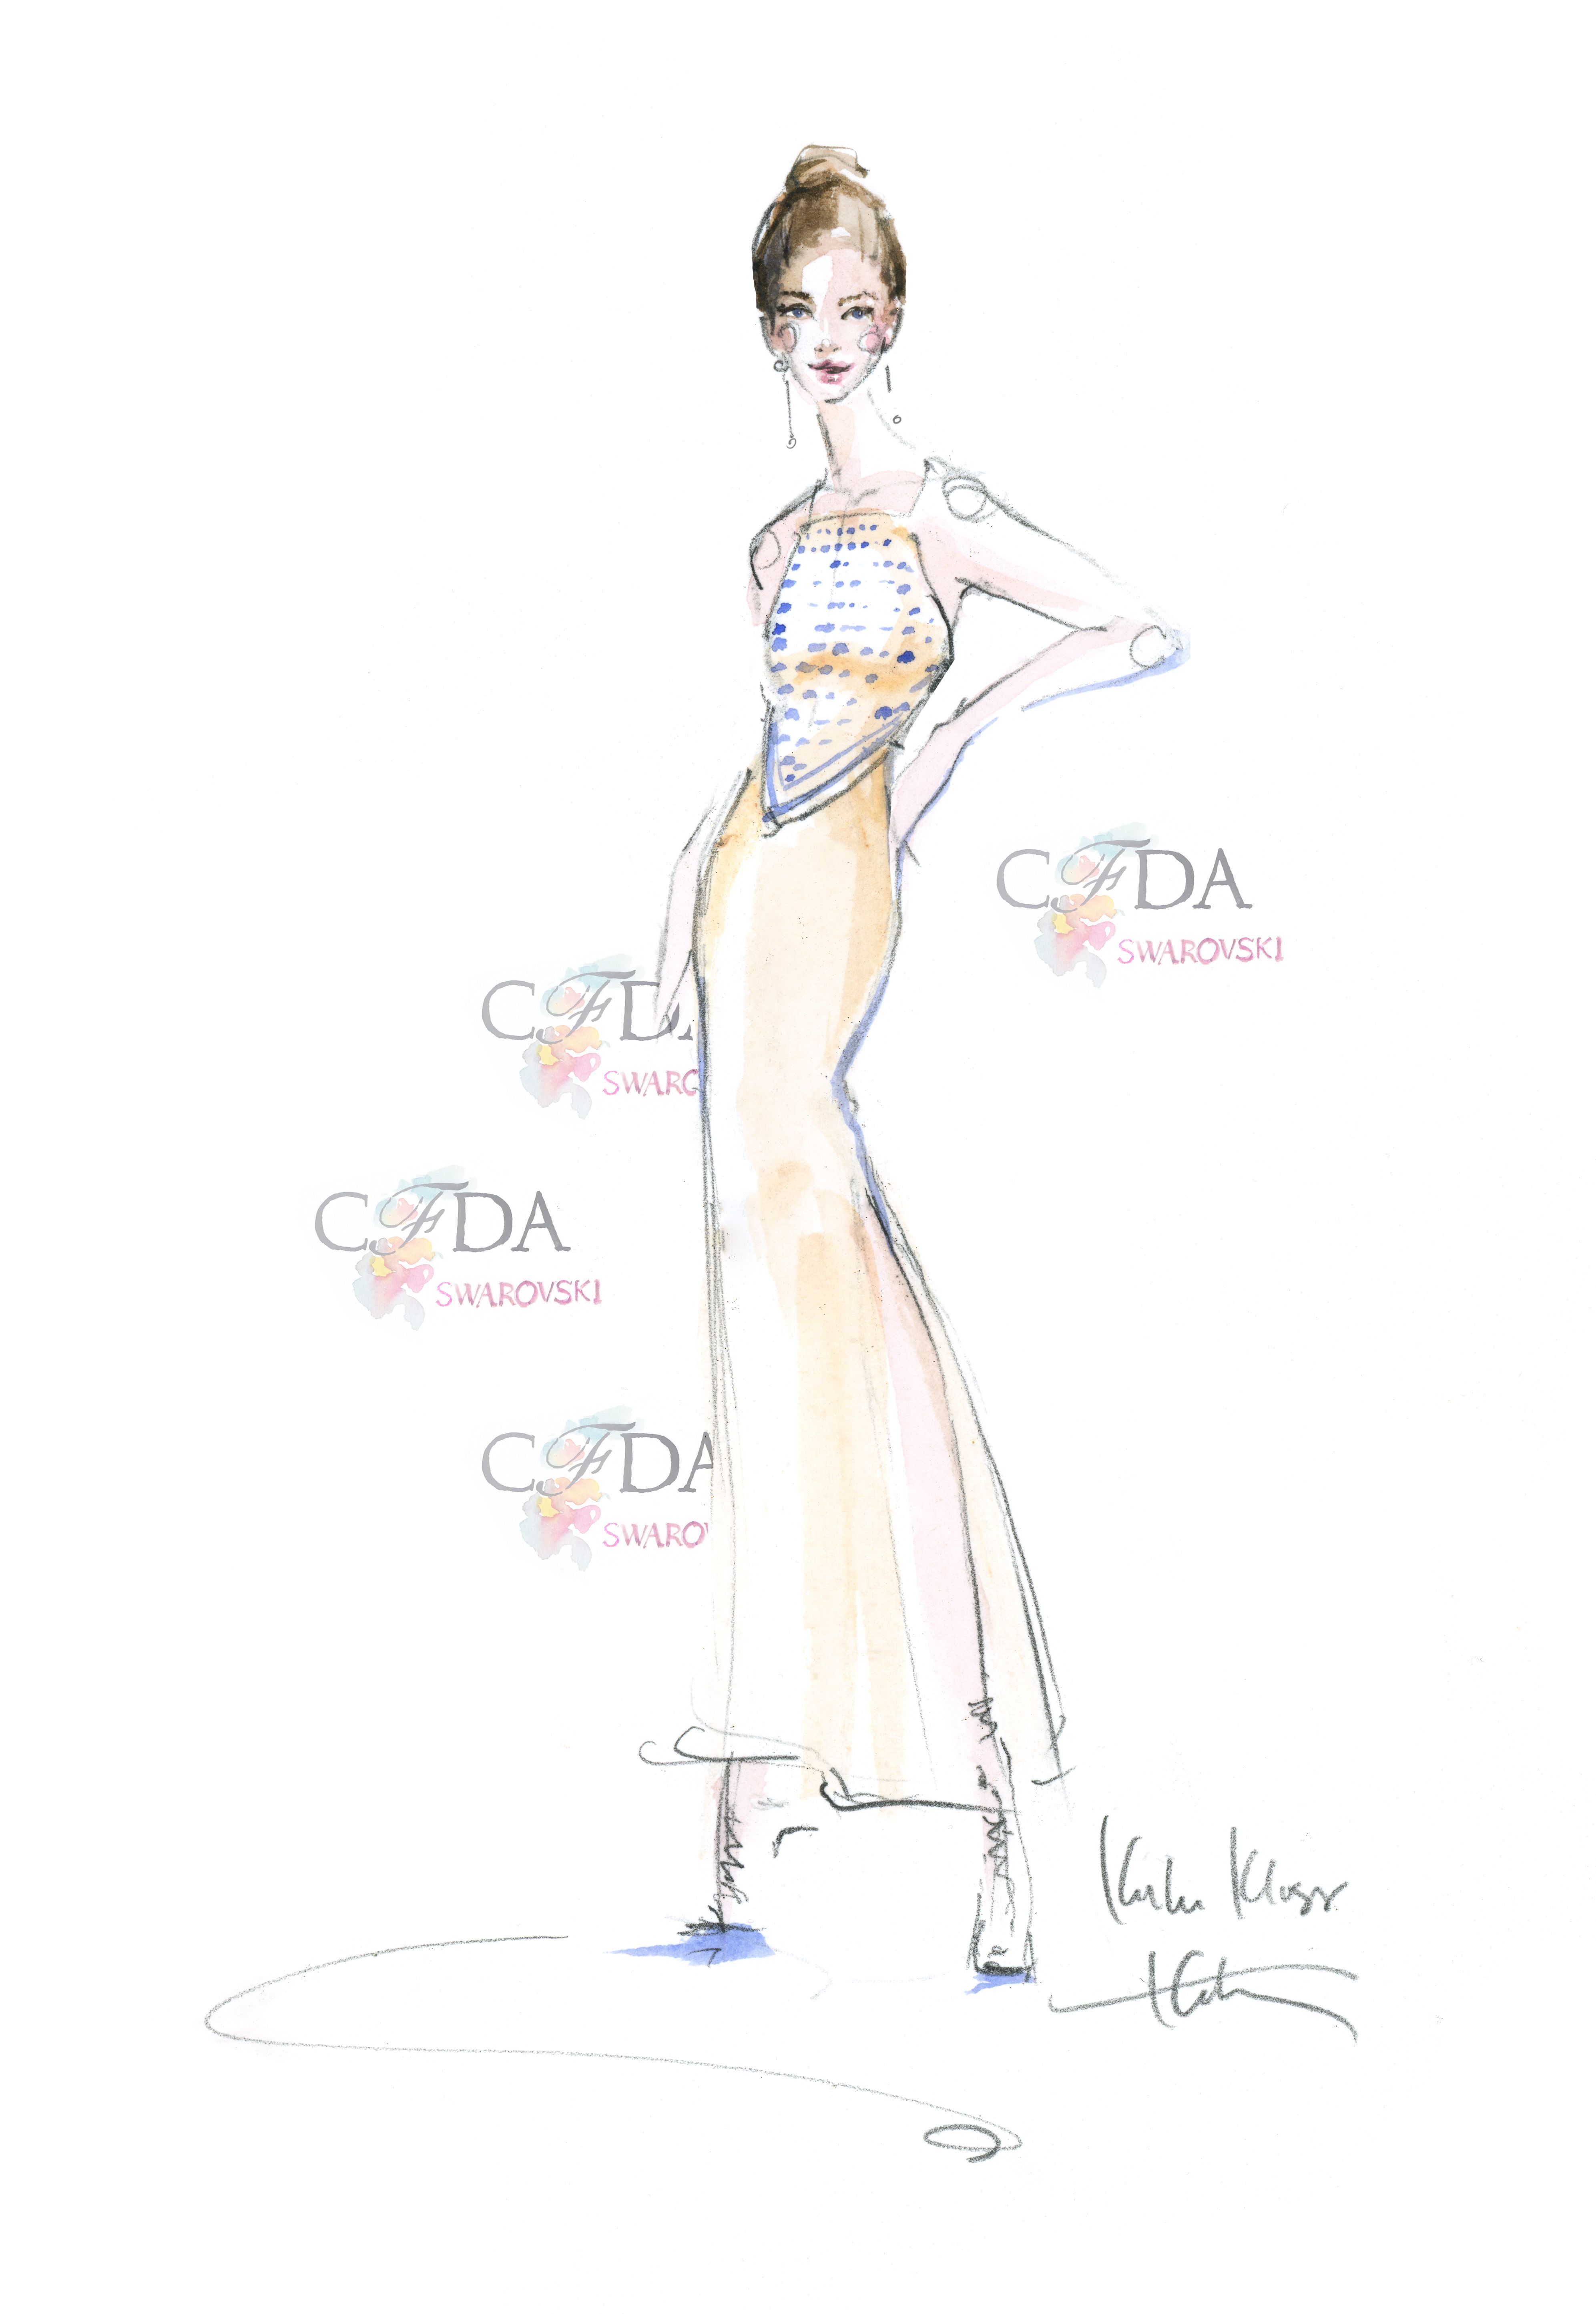 Karlie Kloss sketched by @Katie Hrubec Rodgers | Paper Fashion  #CFDAAwards #RedCarpet #CFDASwarovski